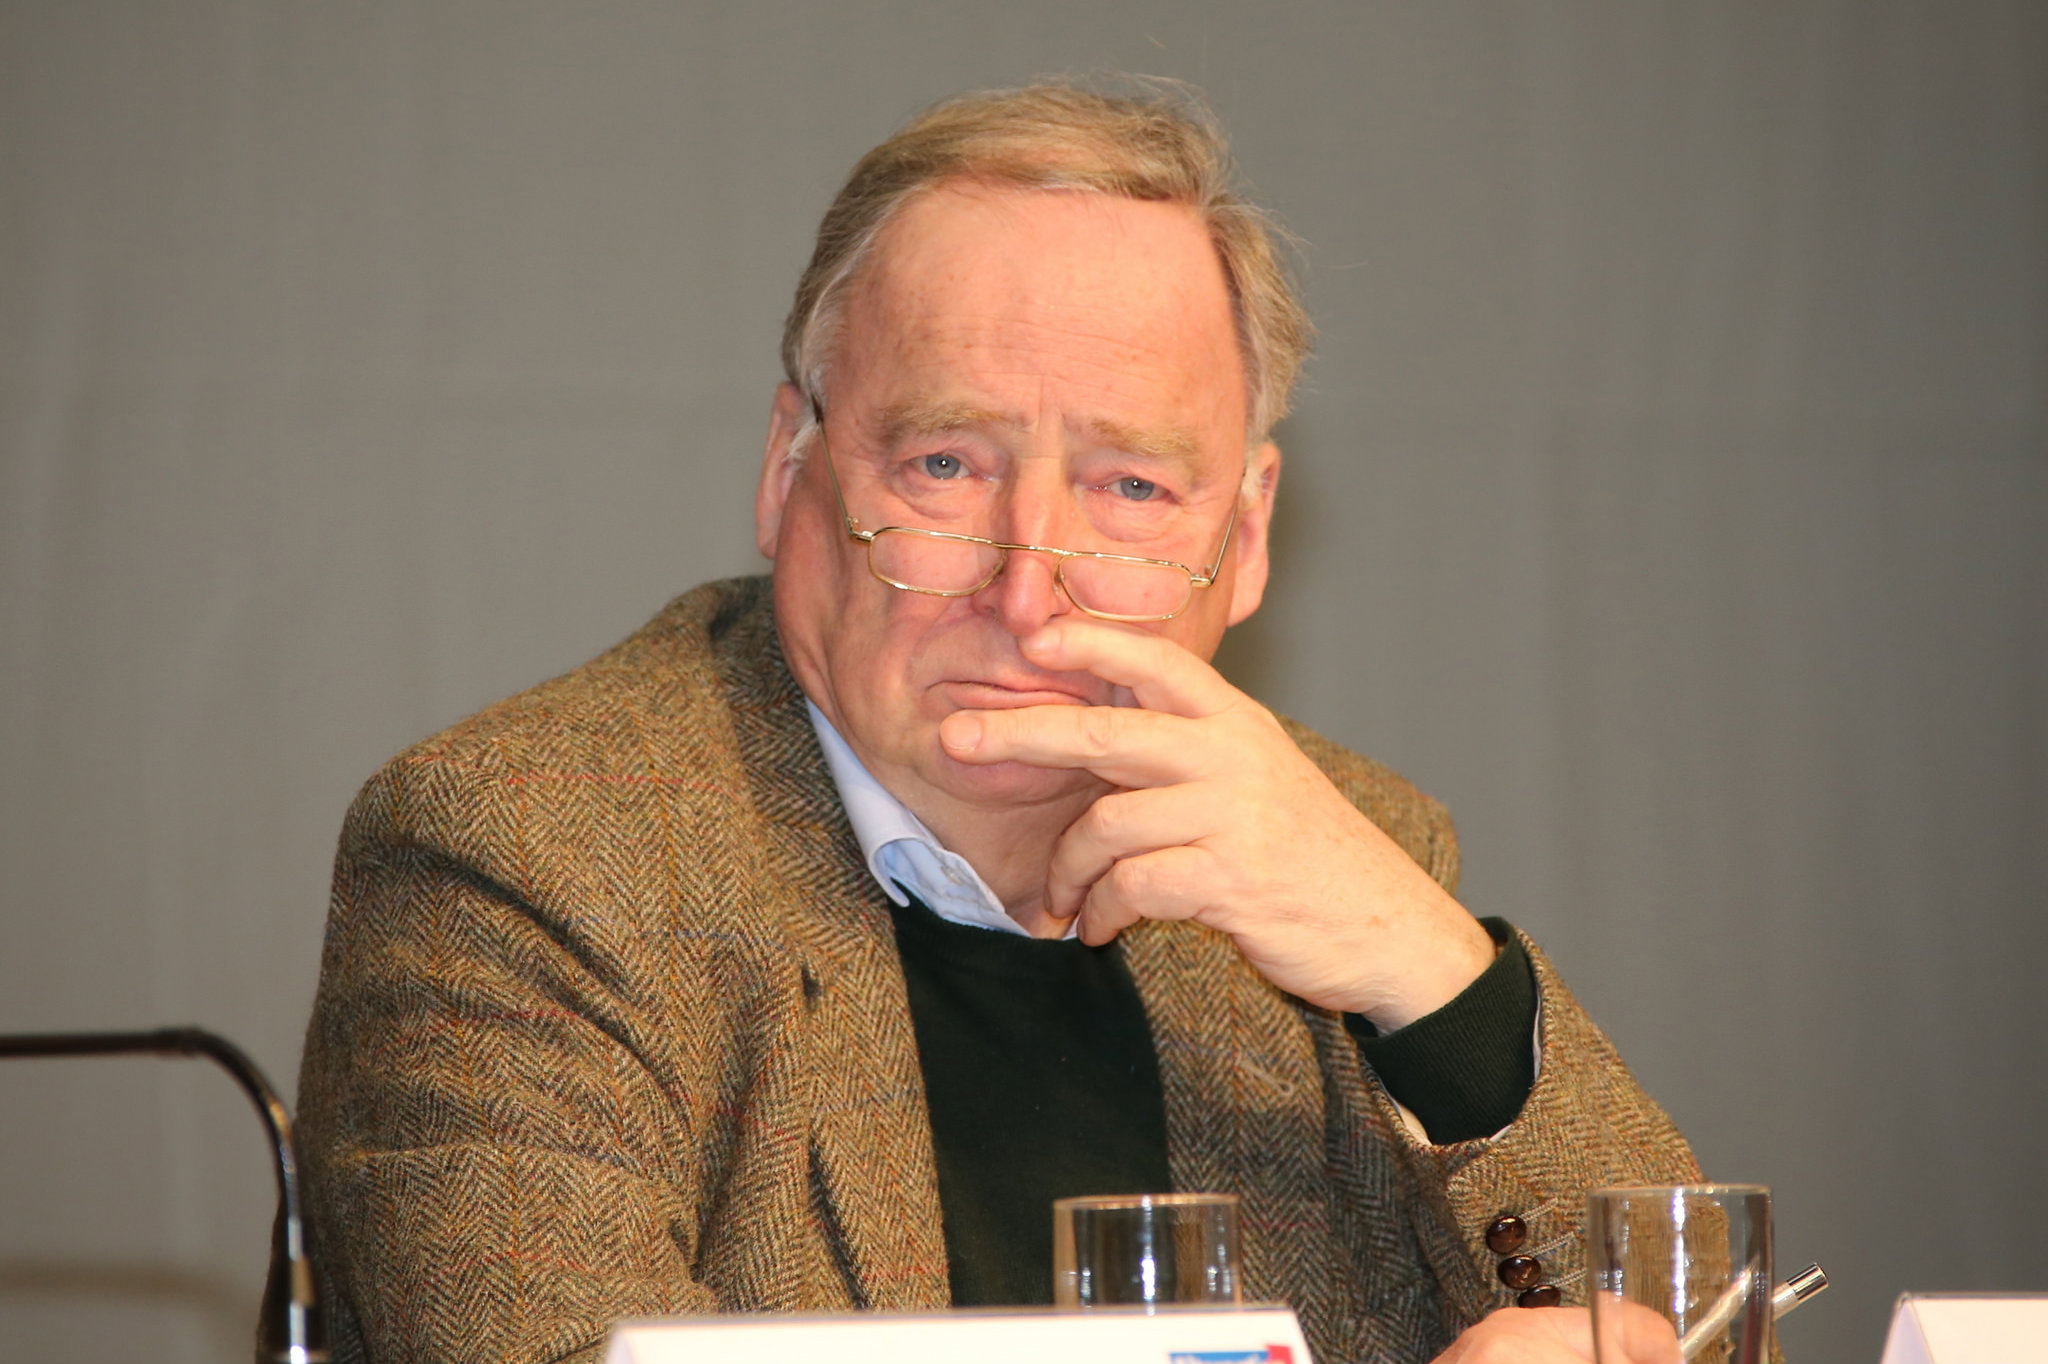 Alexander Gauland, top candidate in Brandenburg from Germany's Eurosceptic AfD, is threatening to withdraw from the regional race amid divisions within the party over the Russia-Ukraine conflict. [blu-news.org/Flickr]